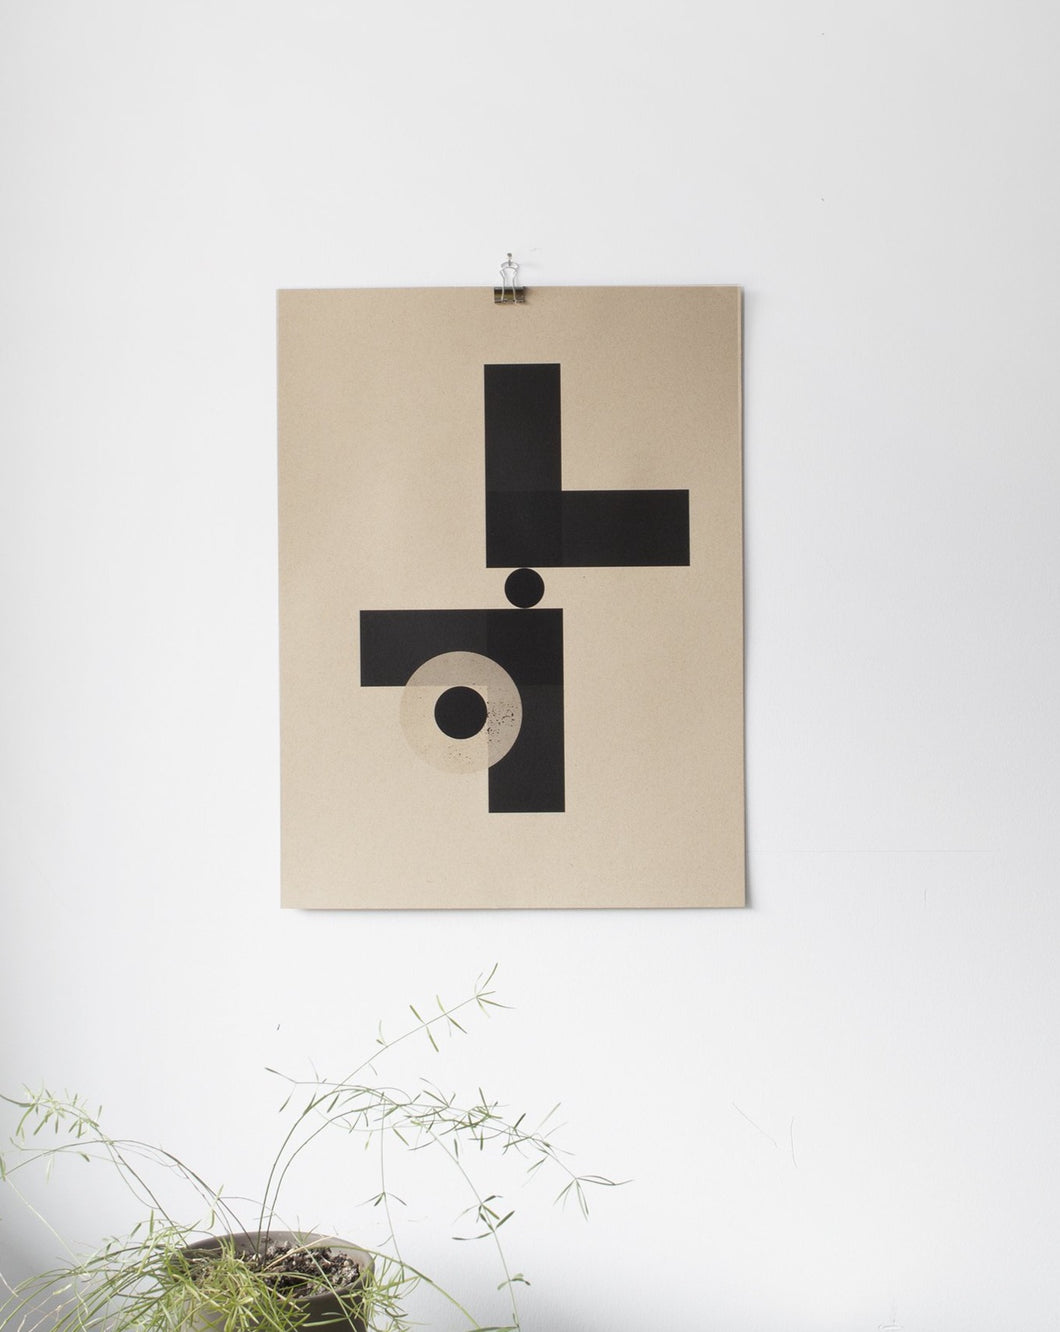 Geometric Black Shapes and Kraft Paper 1